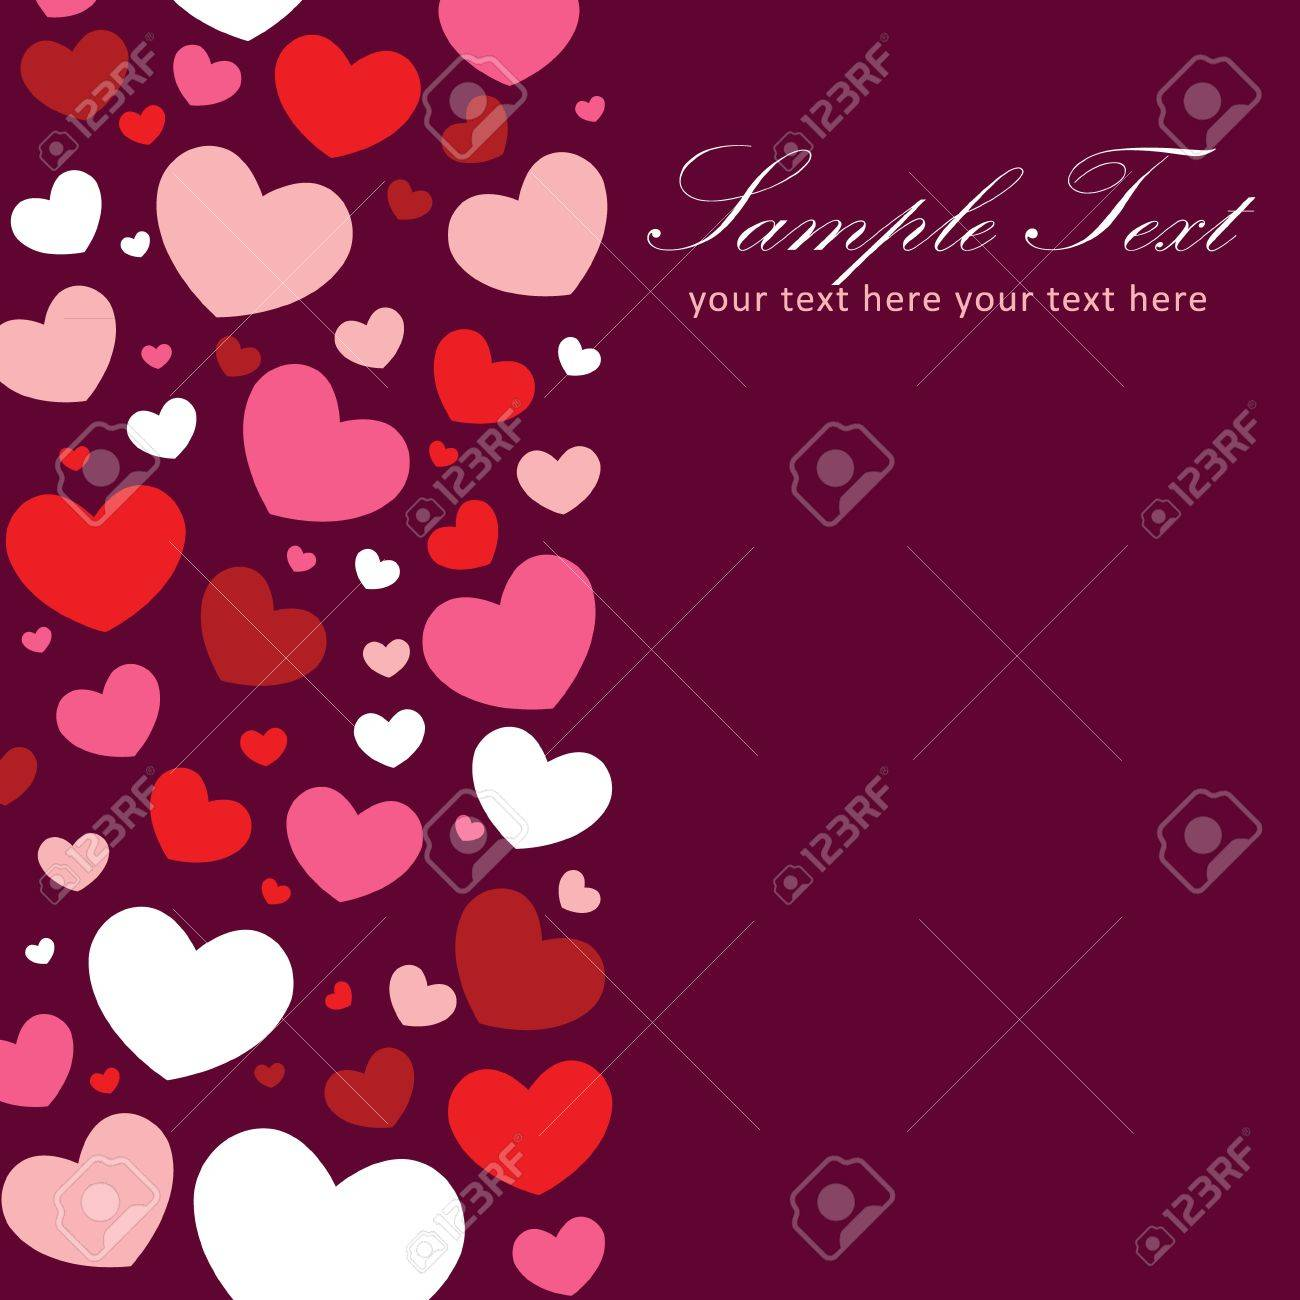 Cute Valentine love congratulation card with border of hearts Stock Vector - 11862246